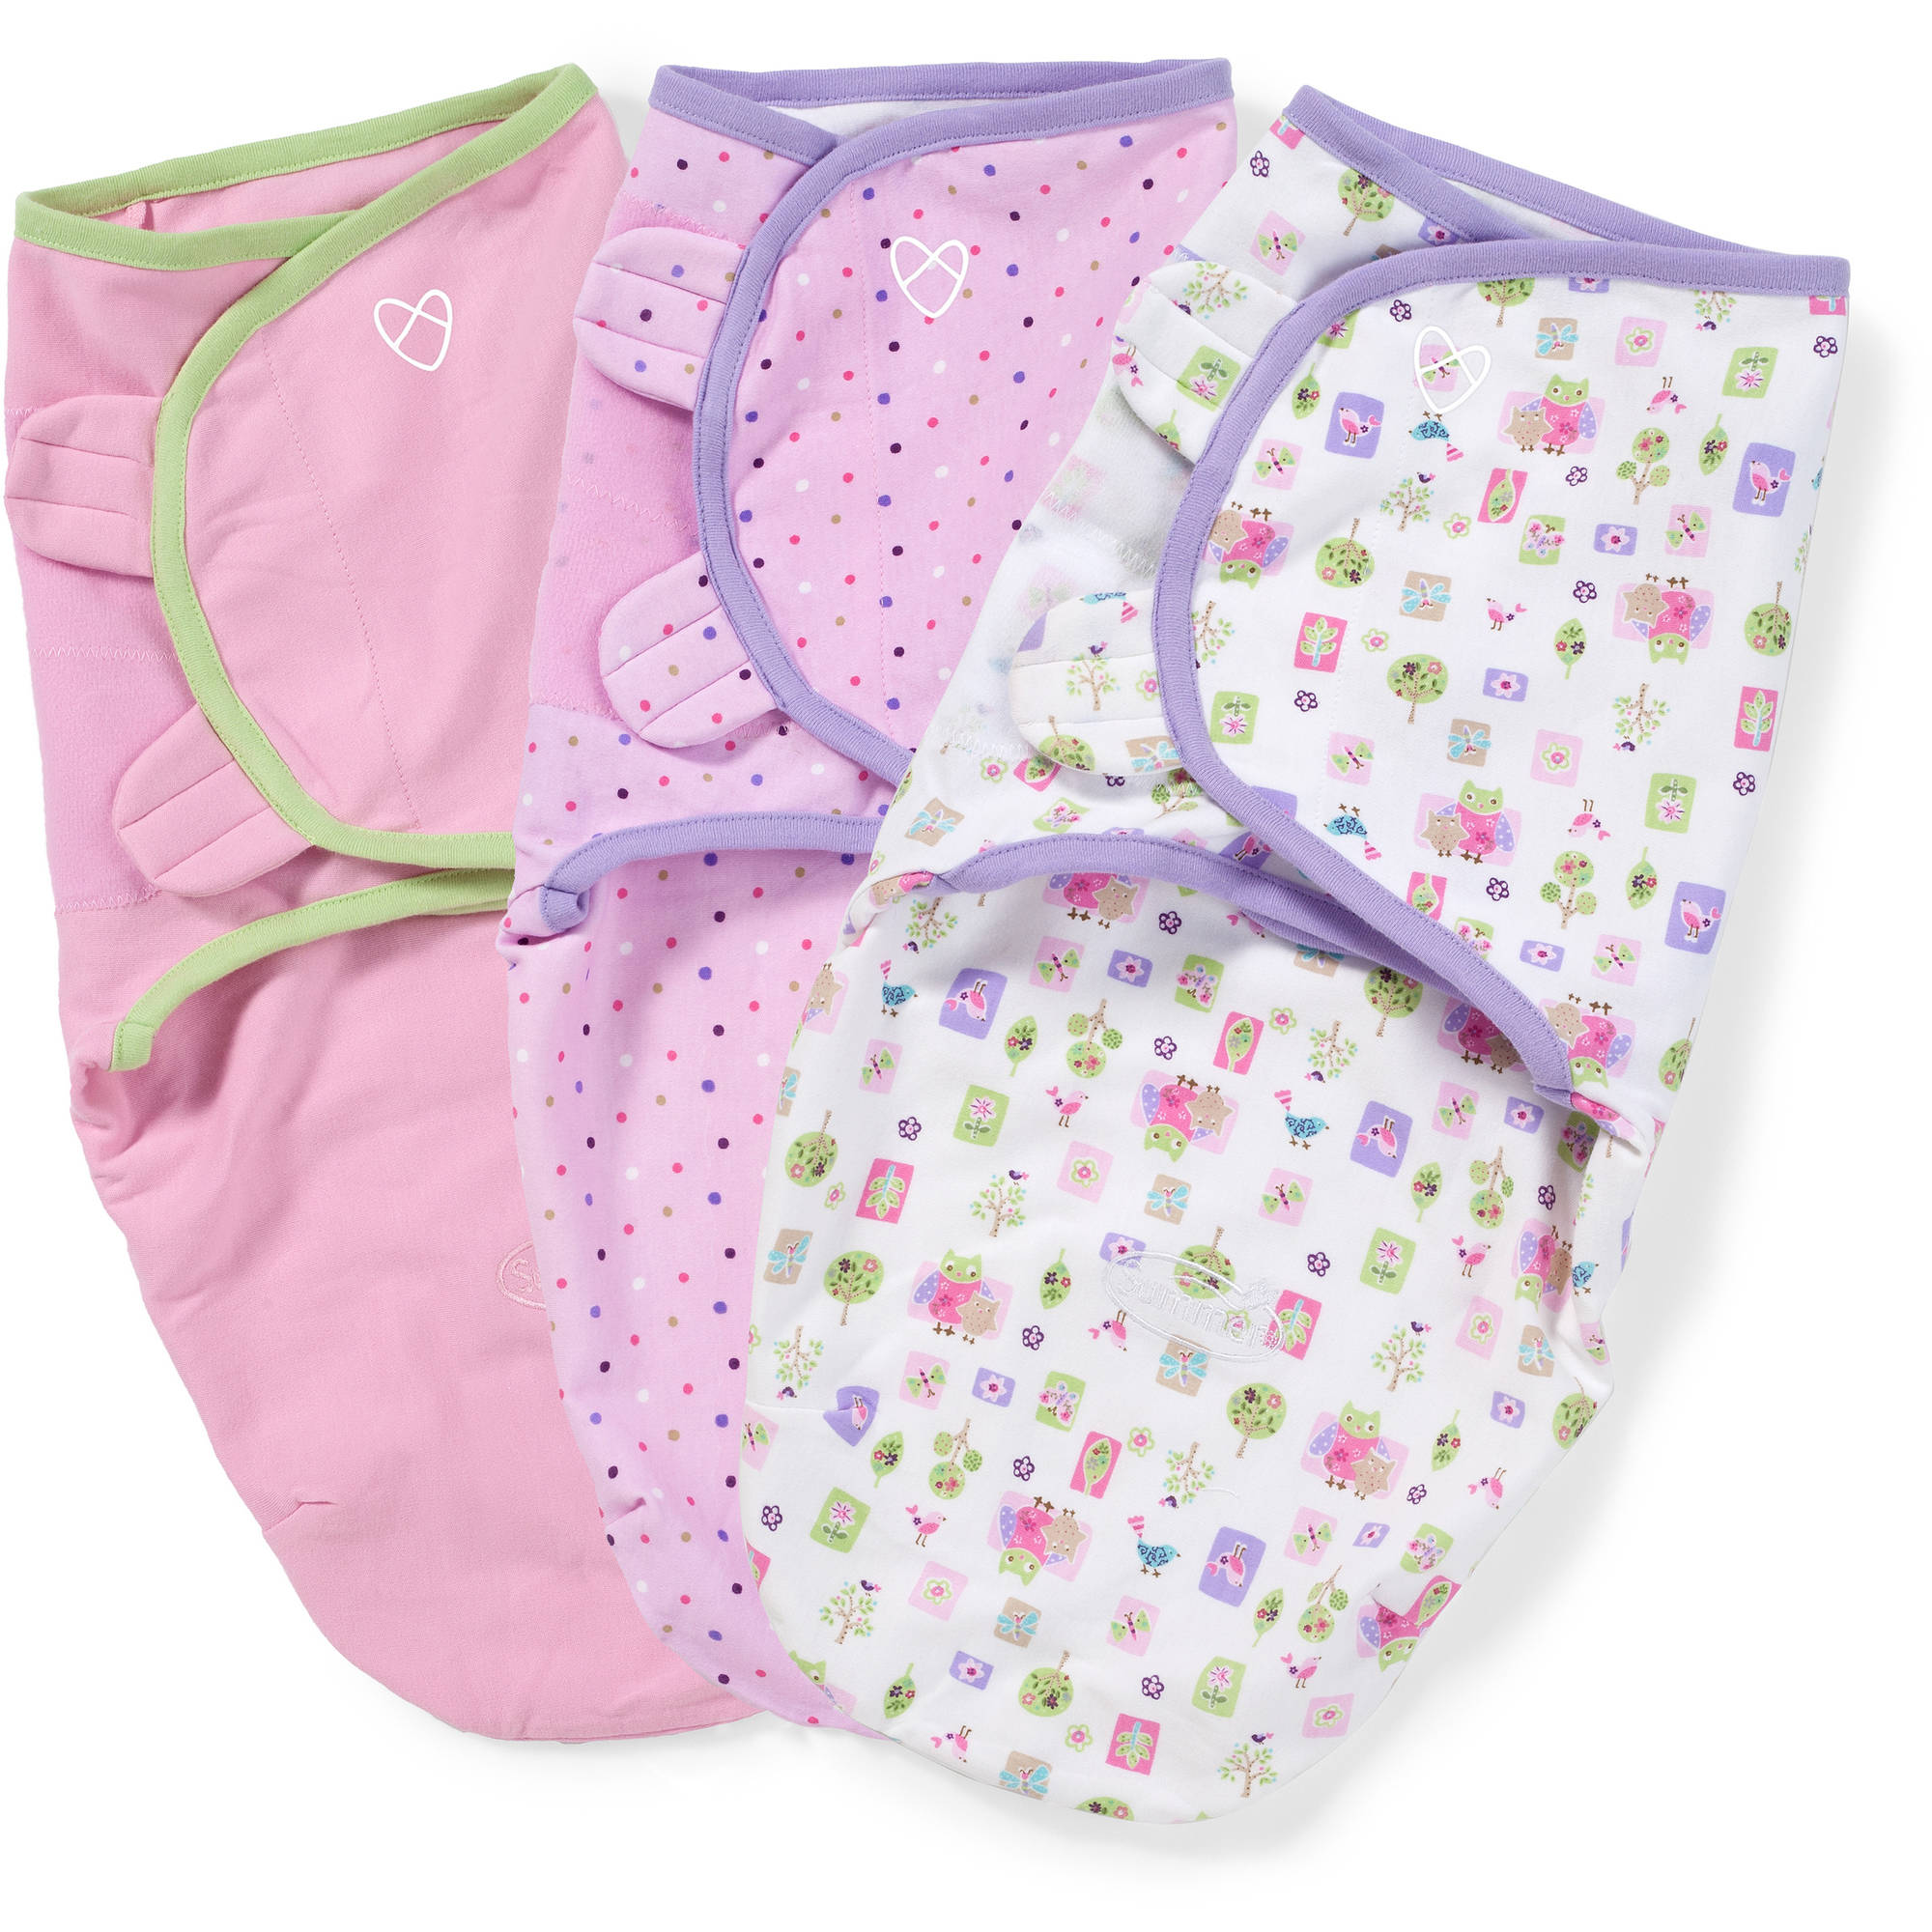 SwaddleMe Original Swaddle, 3-Pack, Who Loves You, Small